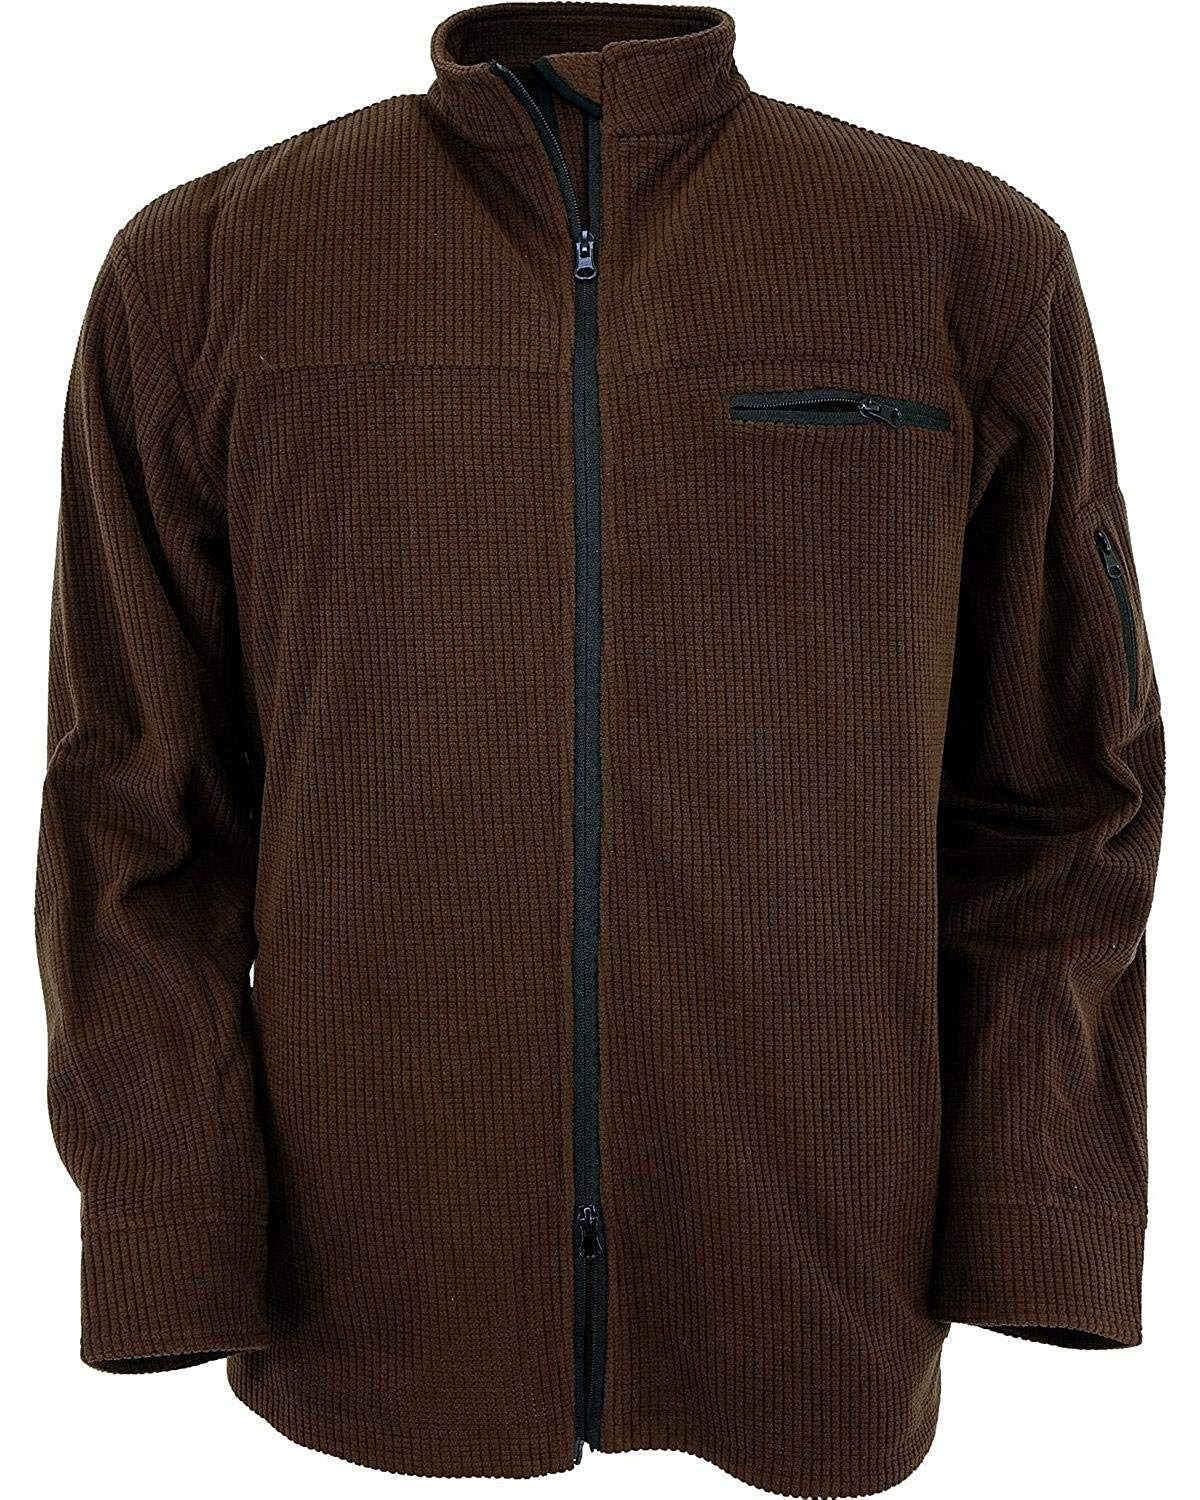 294372eb128 Get Quotations · Outback Trading Co Men s Co. Leroy Jacket - 48724-Brn